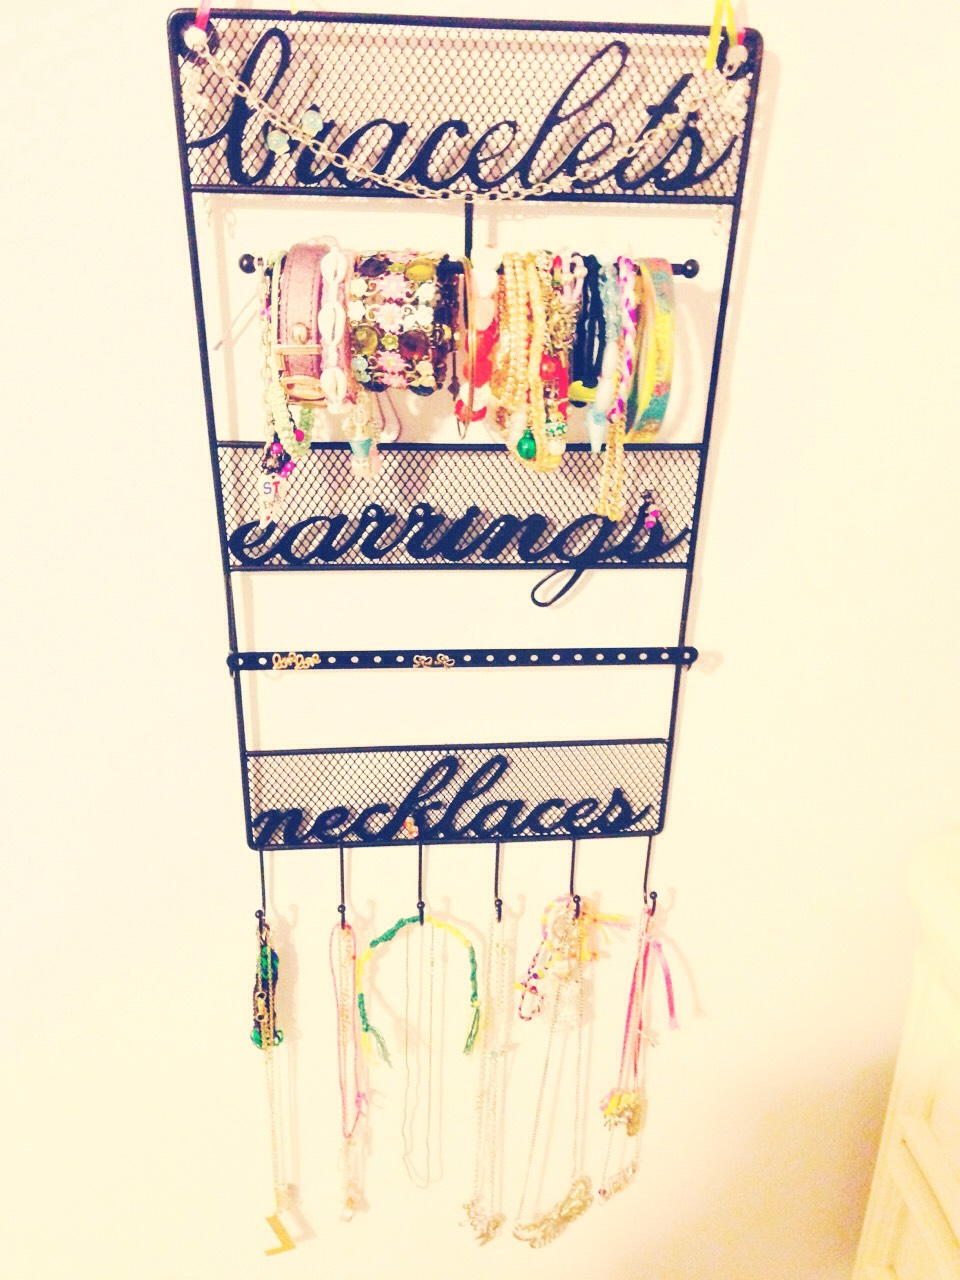 You can buy one of these jewelry holders at Claire's, icing, ect , but I got mine at Michaels craft store